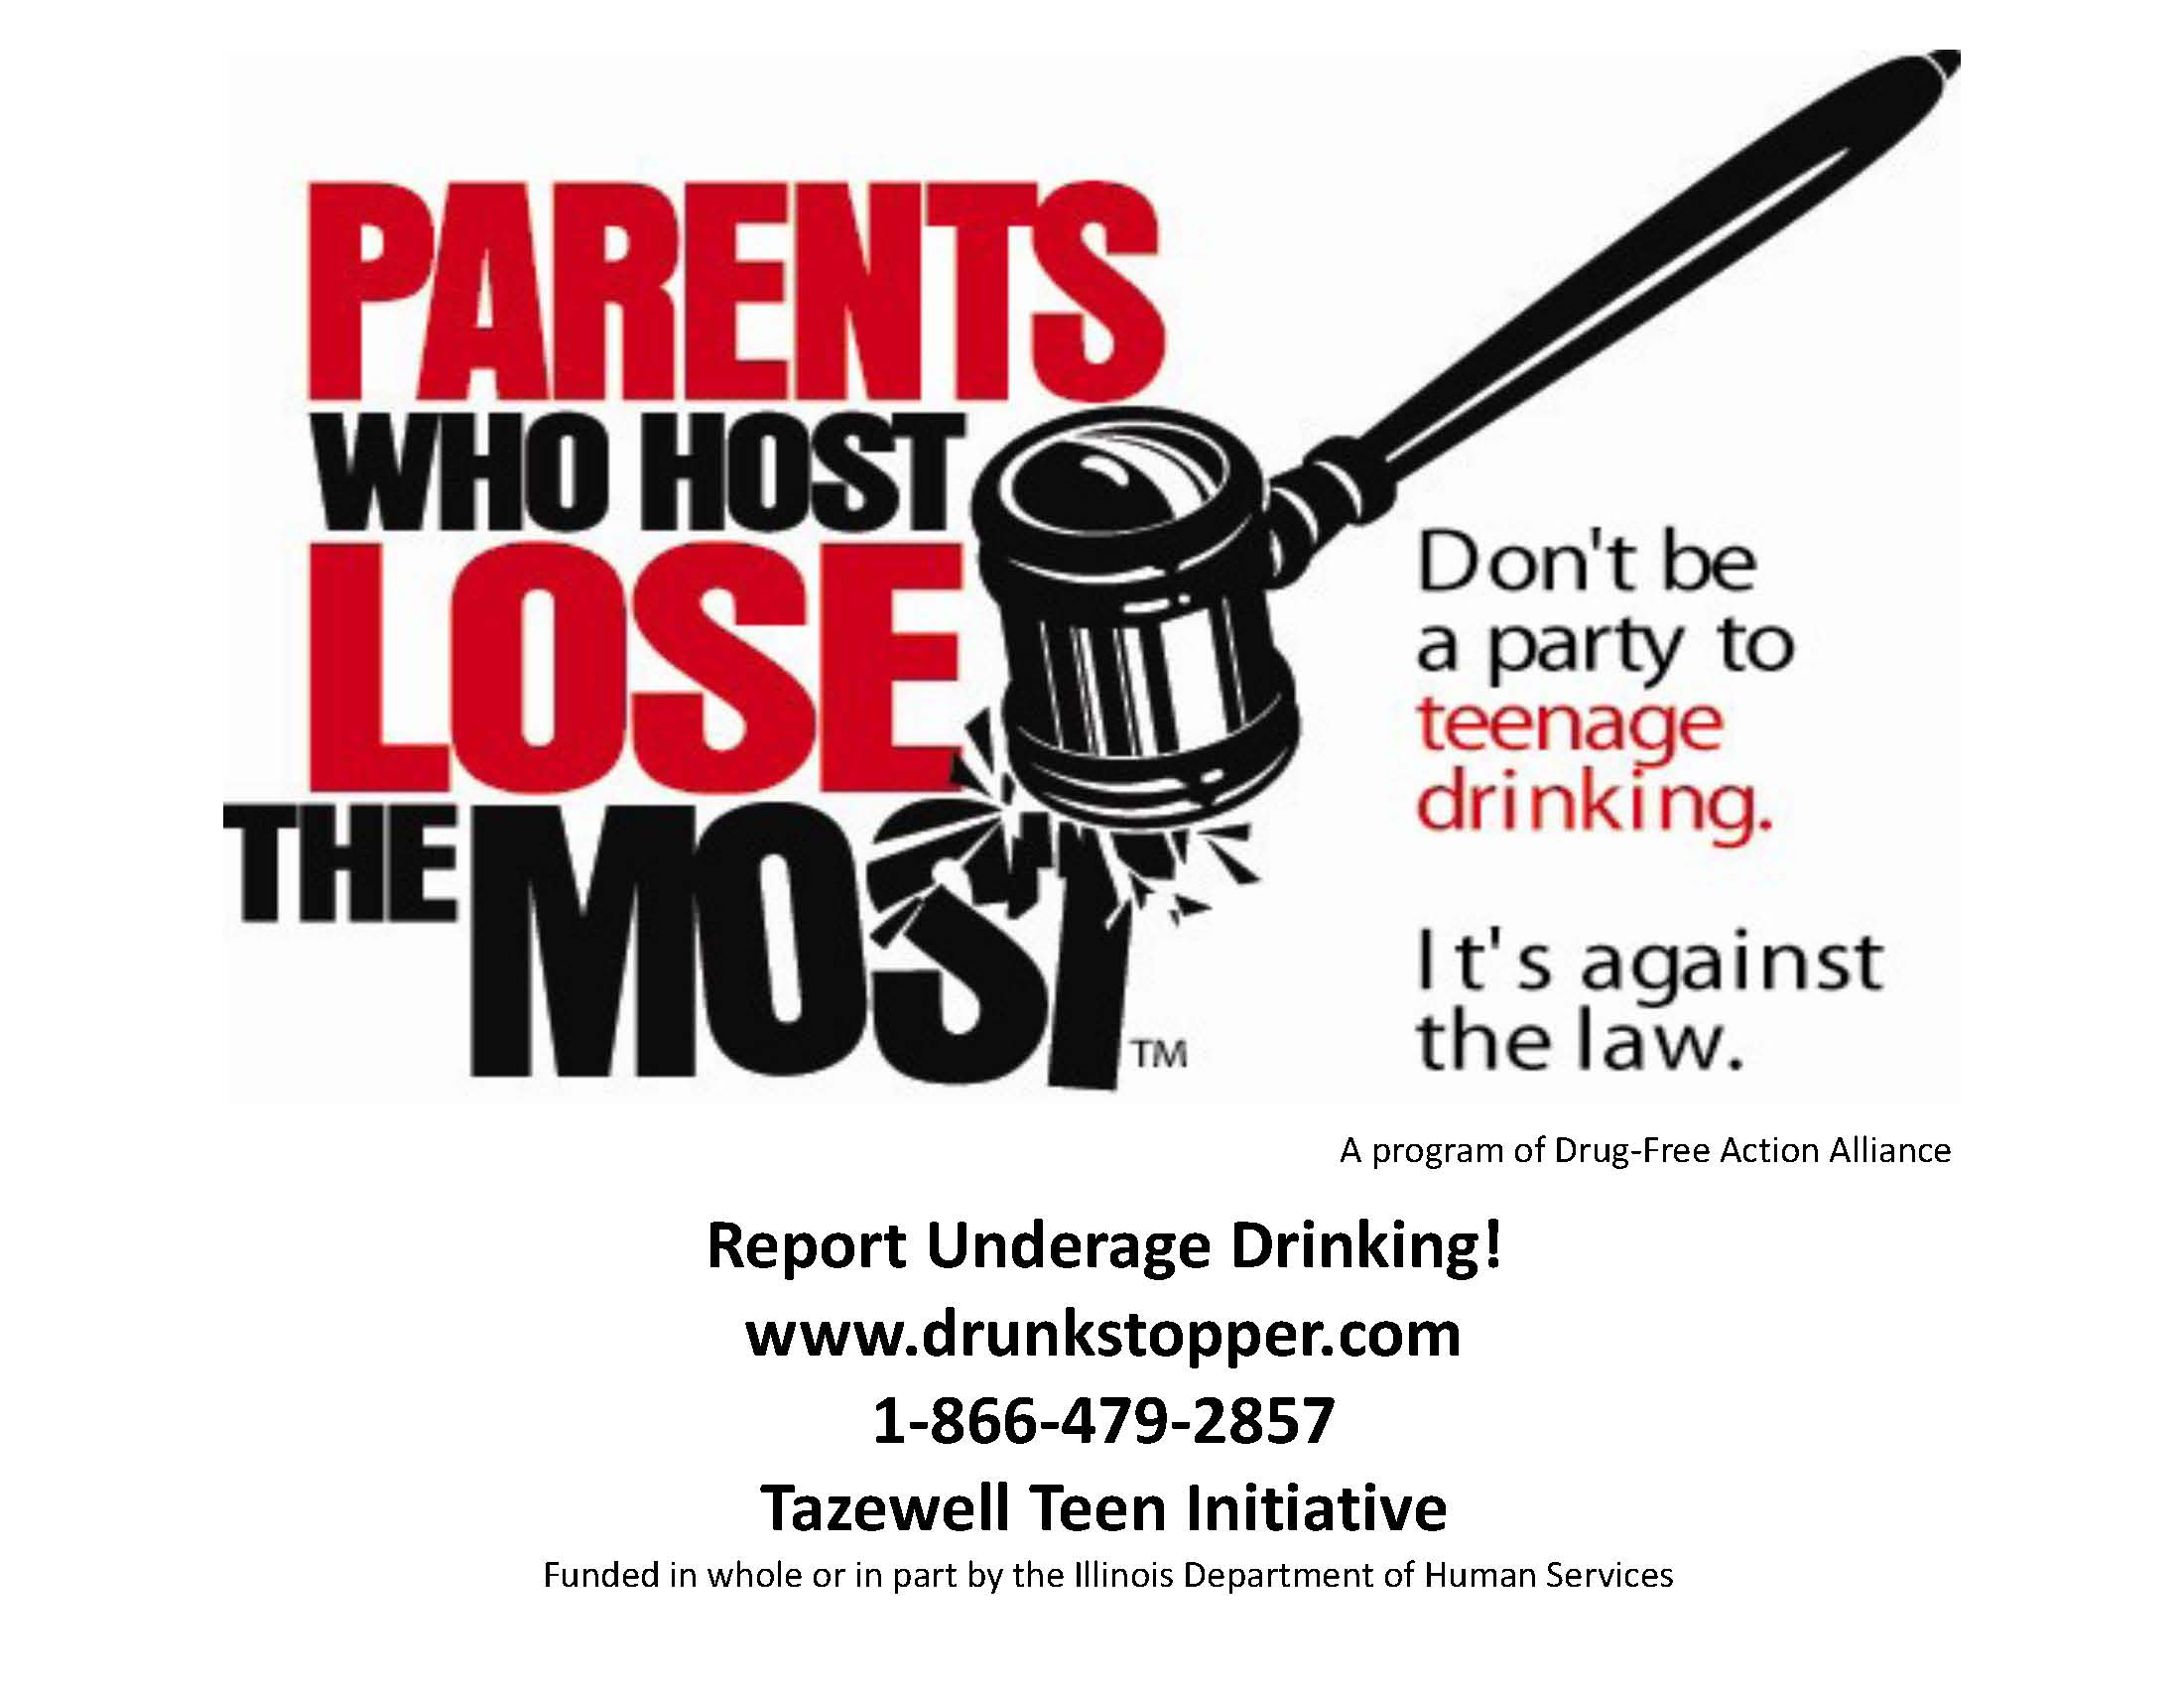 Parents who host lose the most poster to report underage drinking